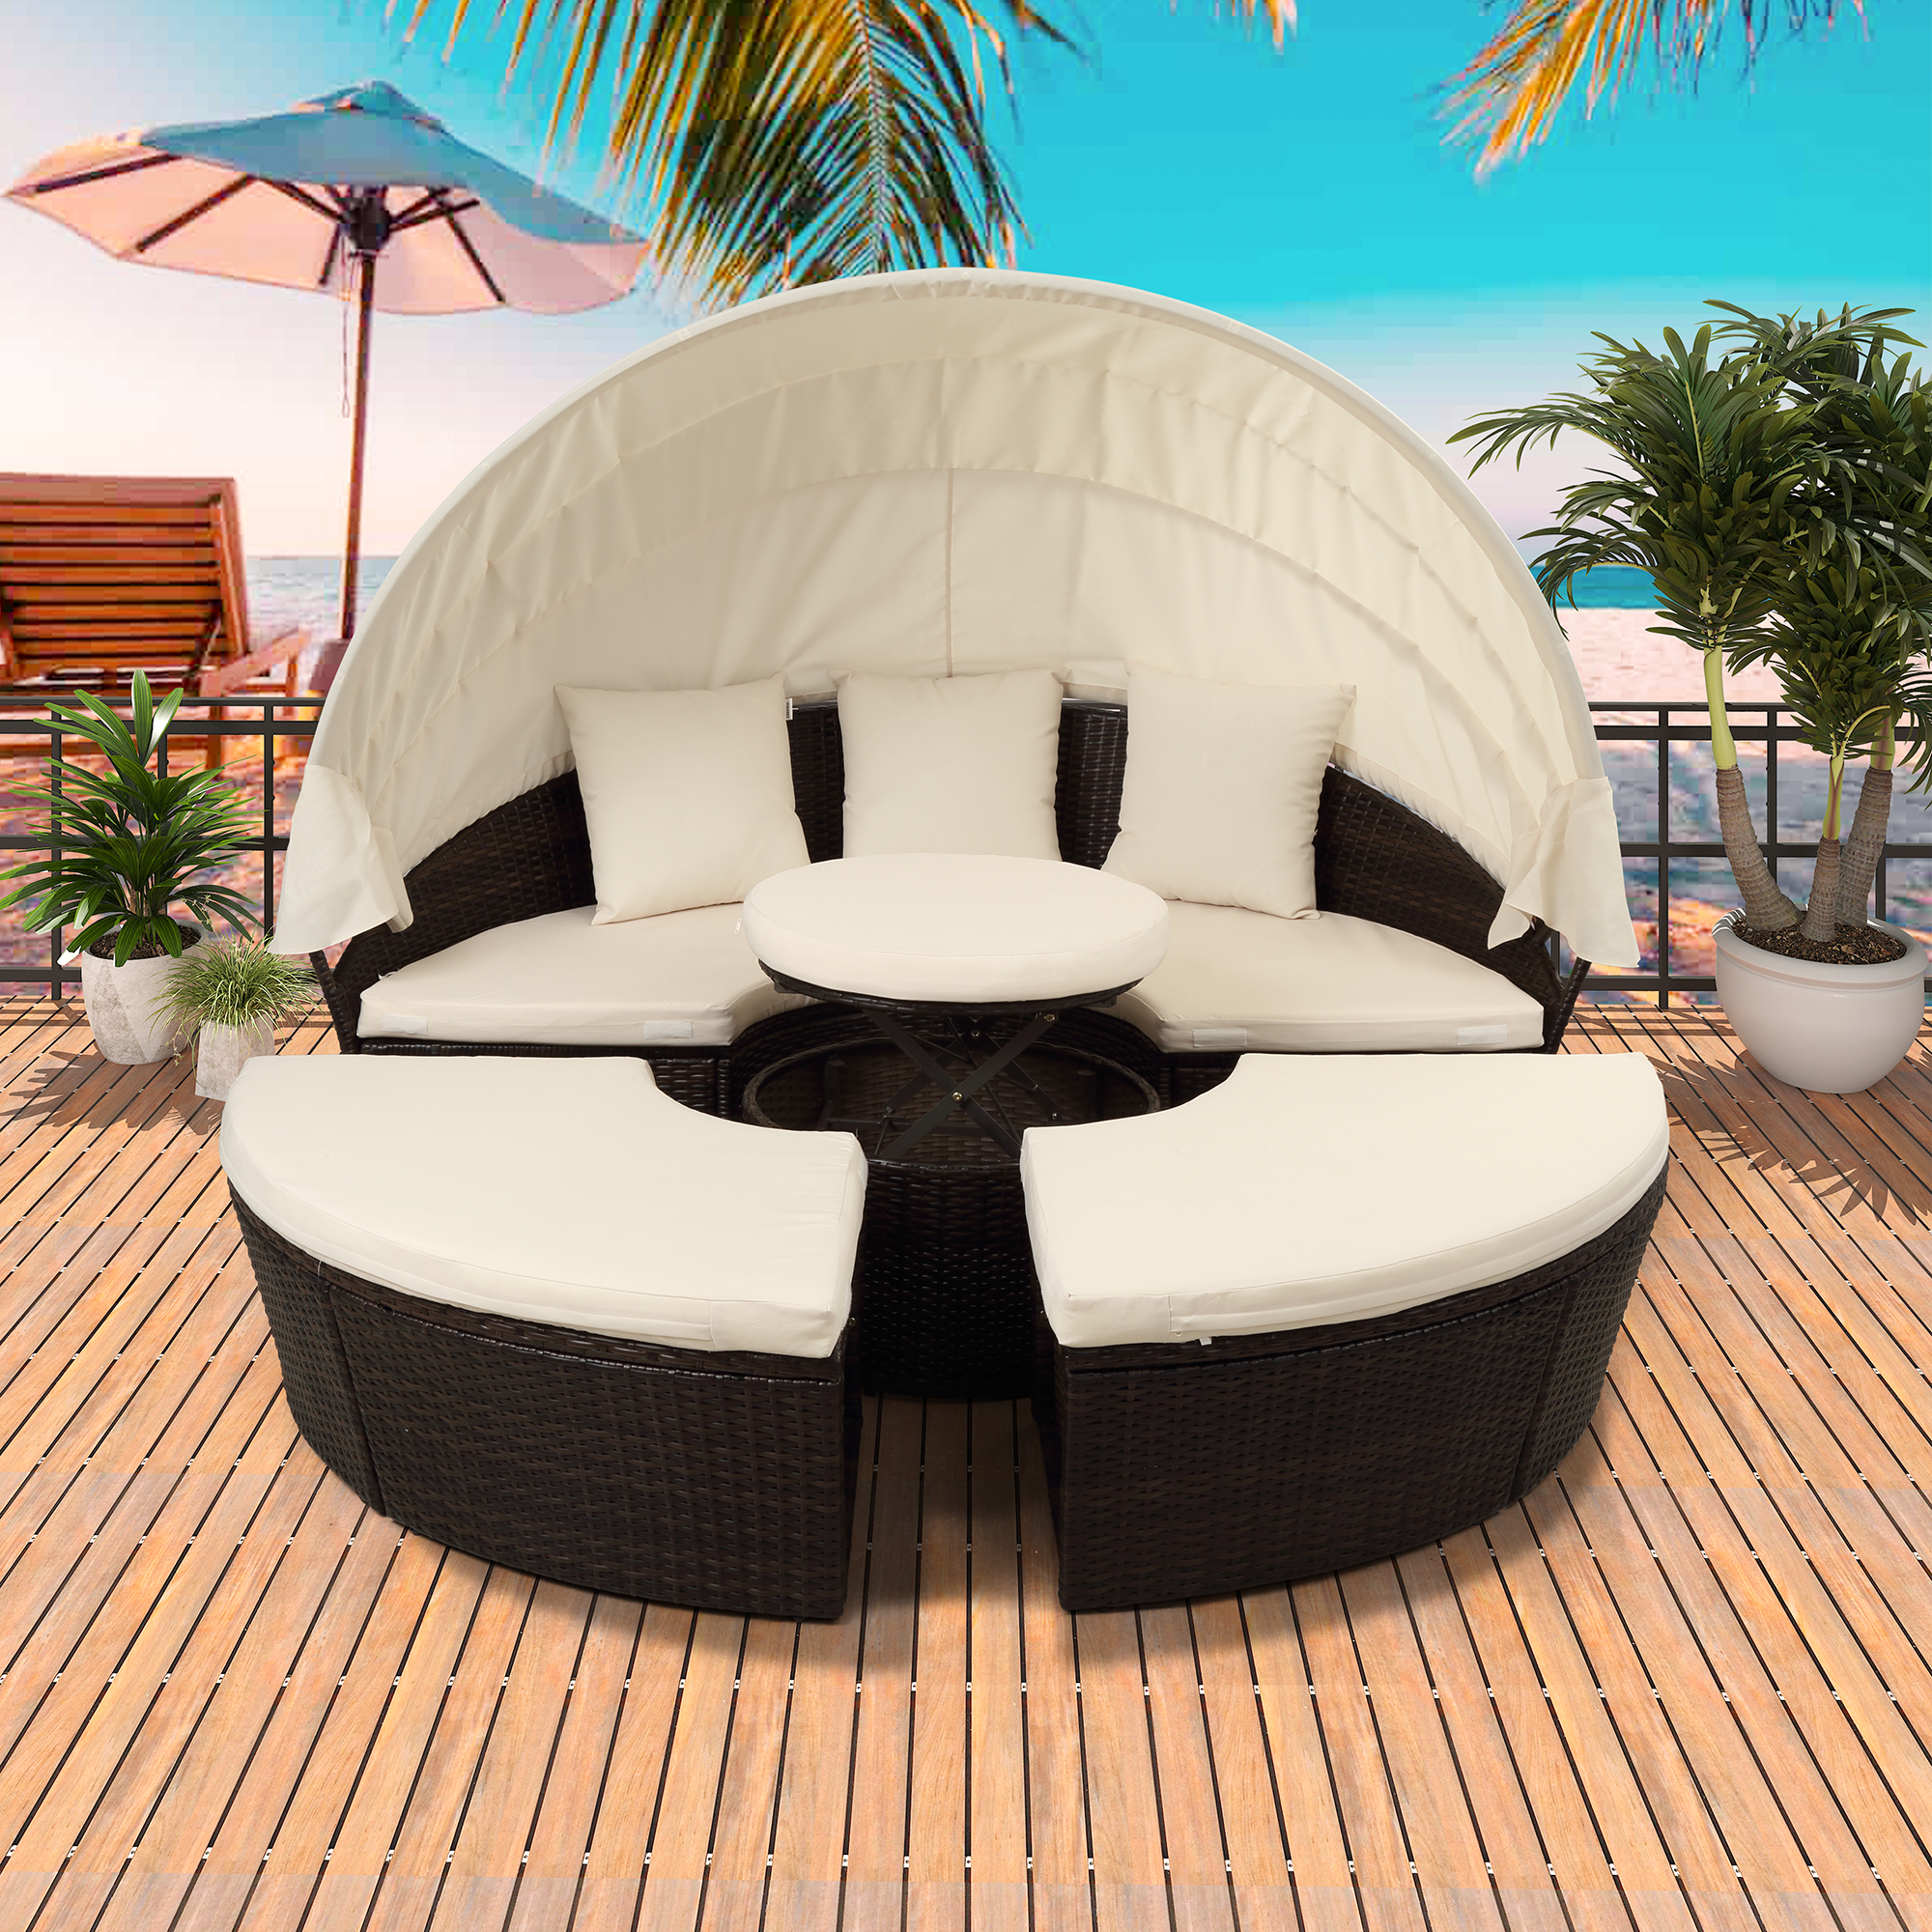 patio daybed 5 piece patio furniture sets round wicker daybed with retractable canopy all weather outdoor sectional sofa set with cushions for